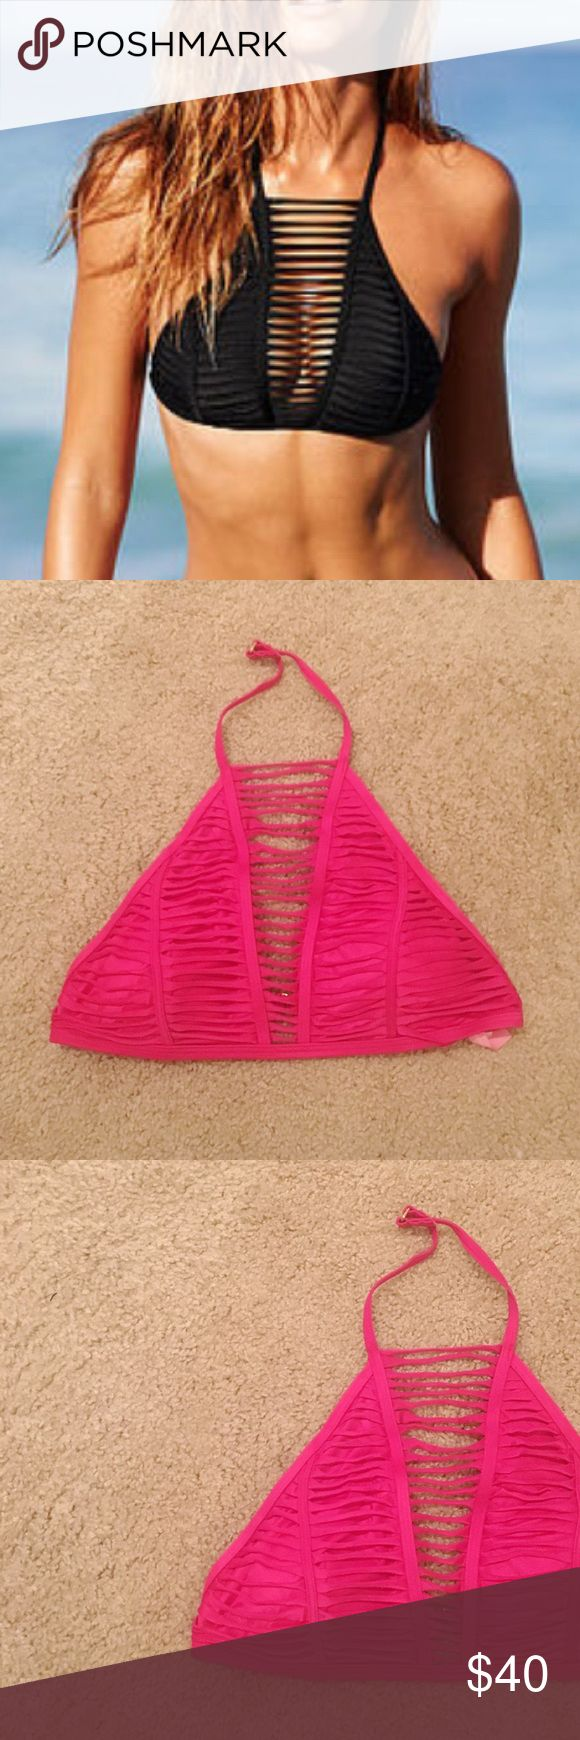 Victoria's Secret Hot Pink Strappy High-Neck Top NWT and in original packaging.  Victoria's Secret Hot Pink Strappy High-Neck Top. So sexy & a fun color to match your favorite bikini bottoms. Size L. No modeling/trades. Victoria's Secret Swim Bikinis